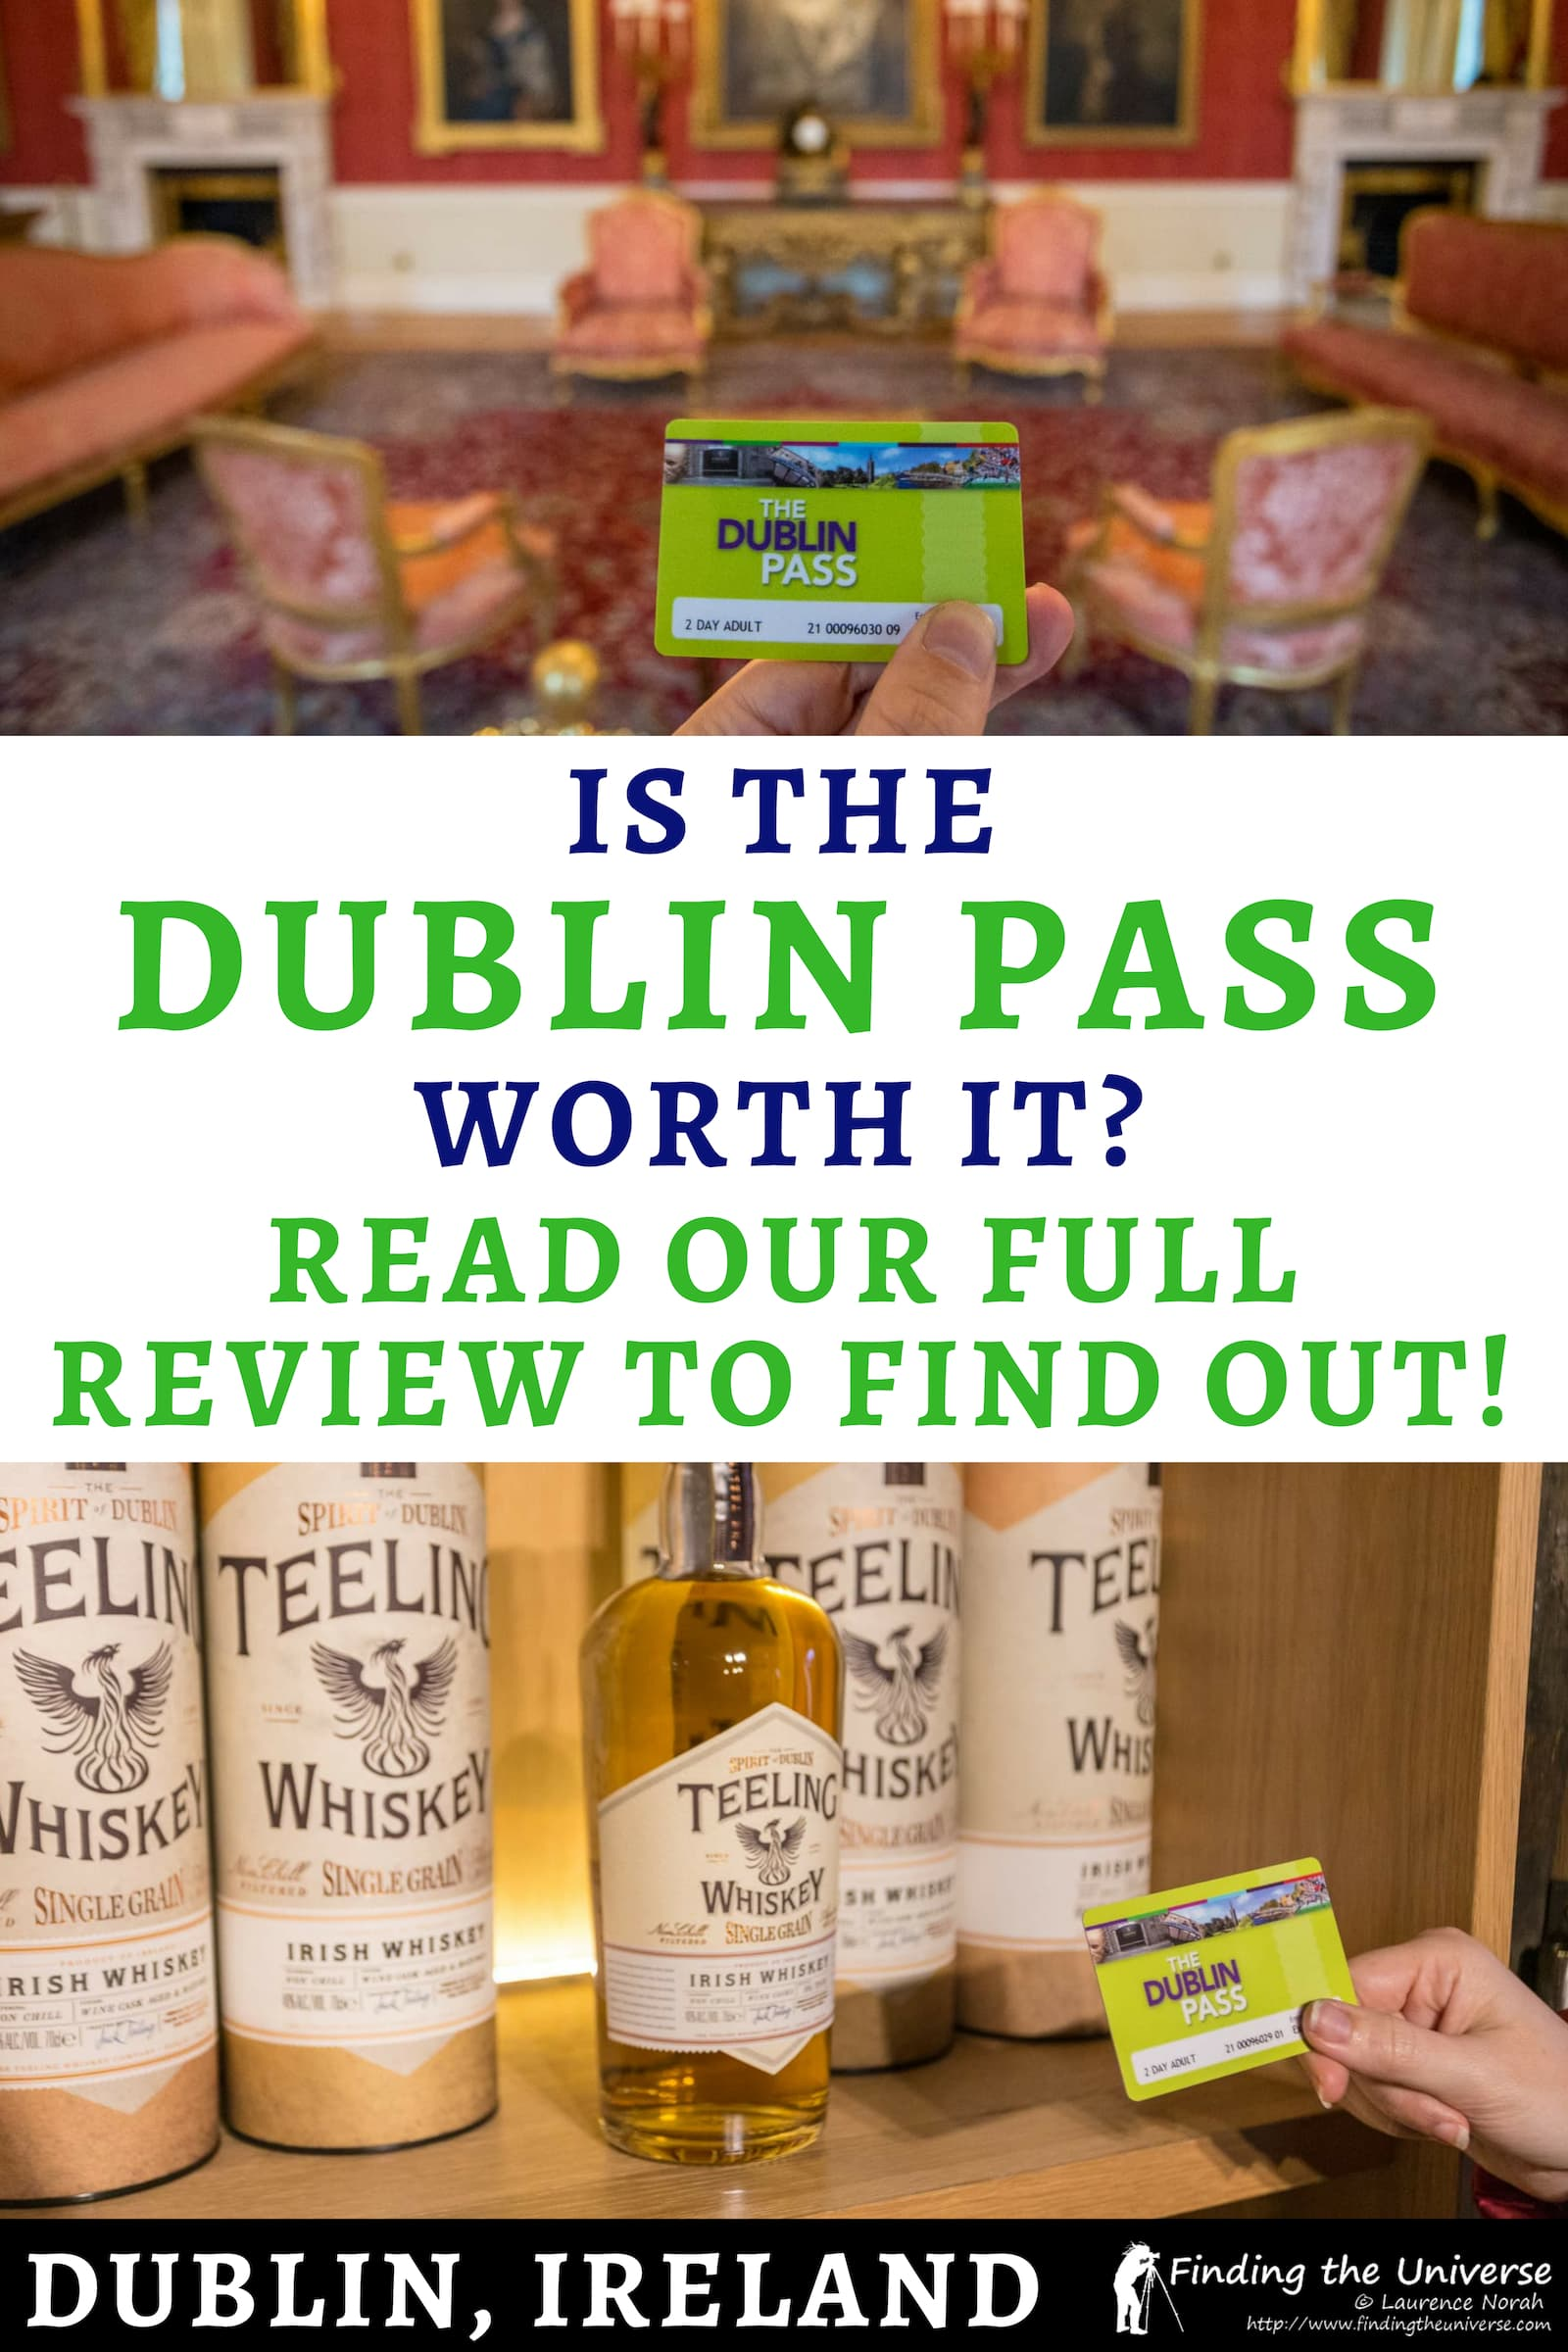 A full review of the Dublin Pass, including a tips on using it, whether it will save you money, and advice on where to buy a Dublin Pass